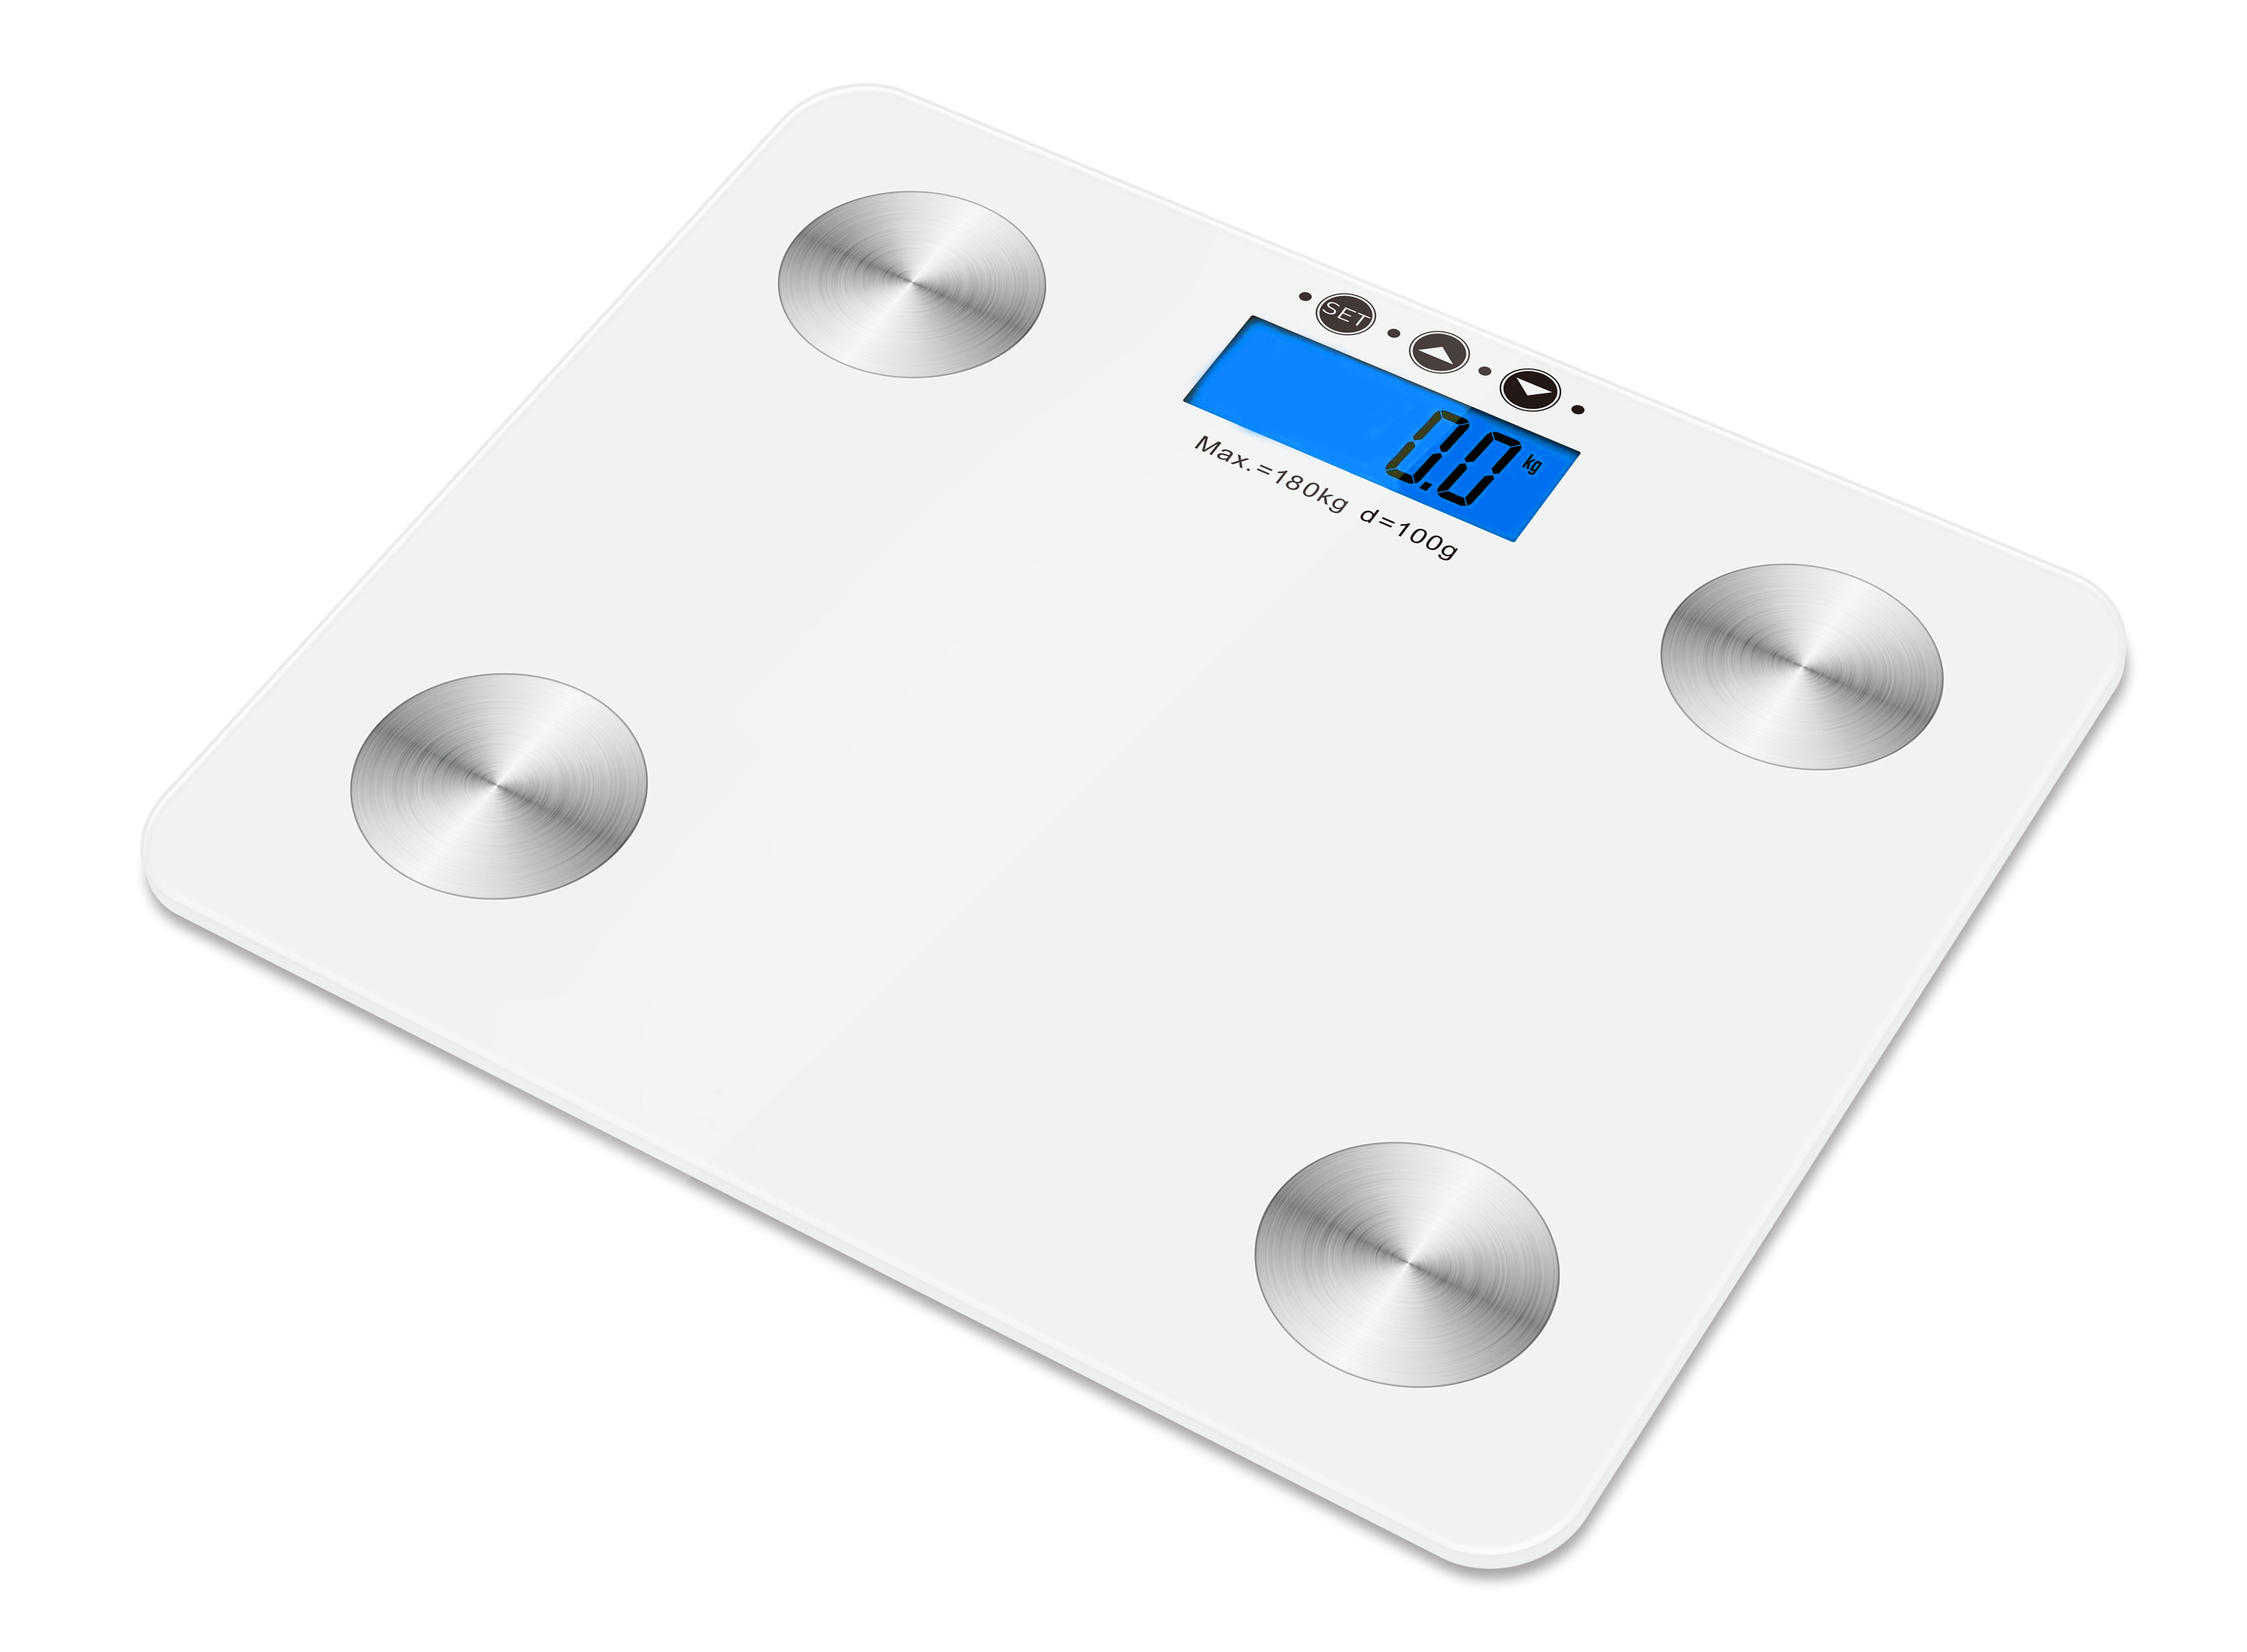 Kabalo White 180kg Capacity Electronic Digital Multi-Function BODY FAT Composition Water Muscle Bone Calories BMI Analyser, Batteries Included! Stylish Premier Bathroom Scale, with blue backlight